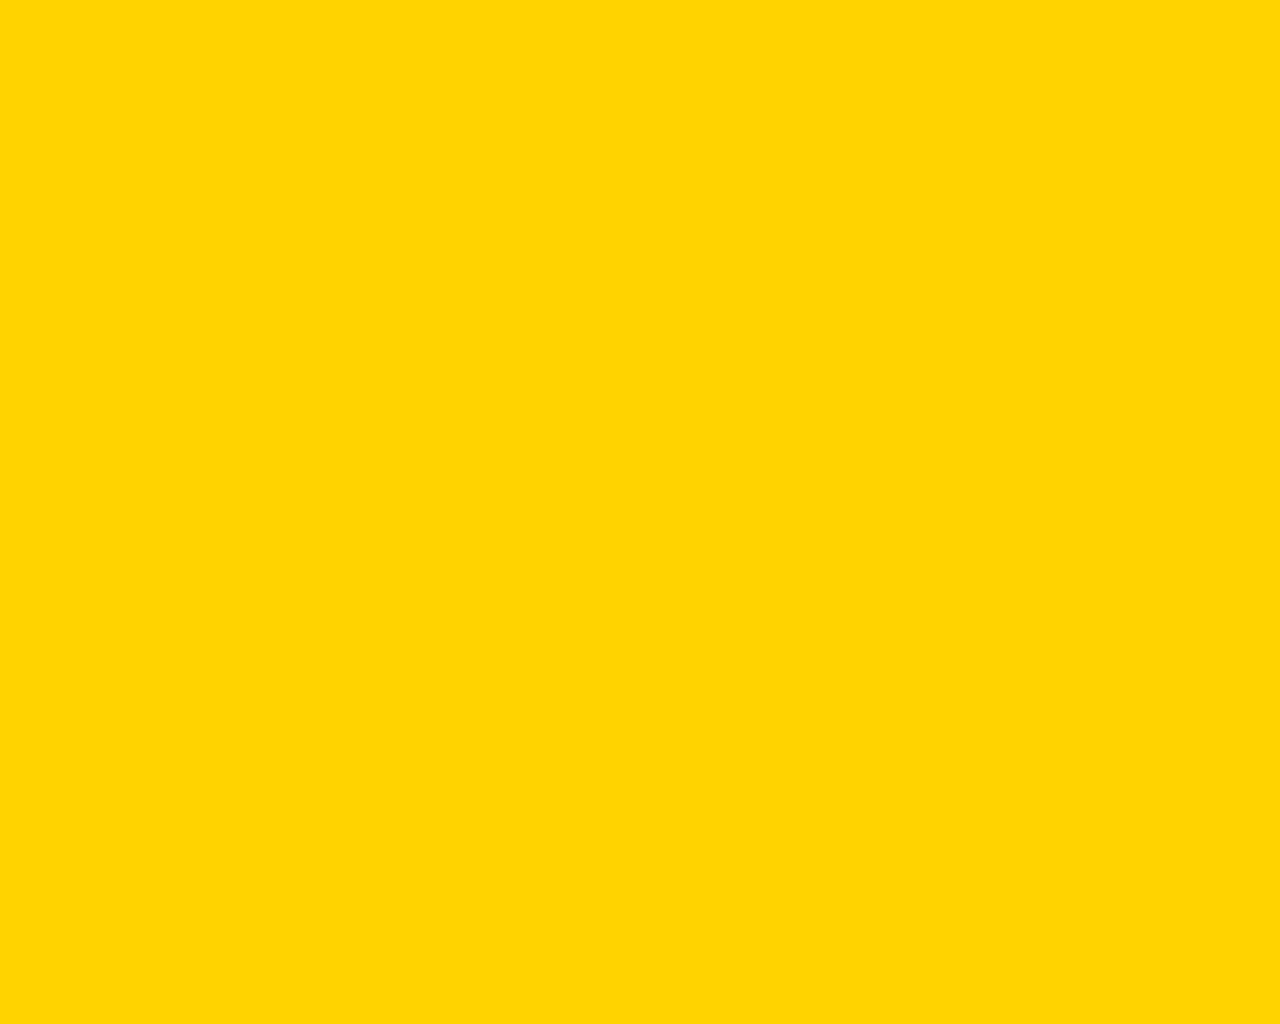 1280x1024 Yellow NCS Solid Color Background